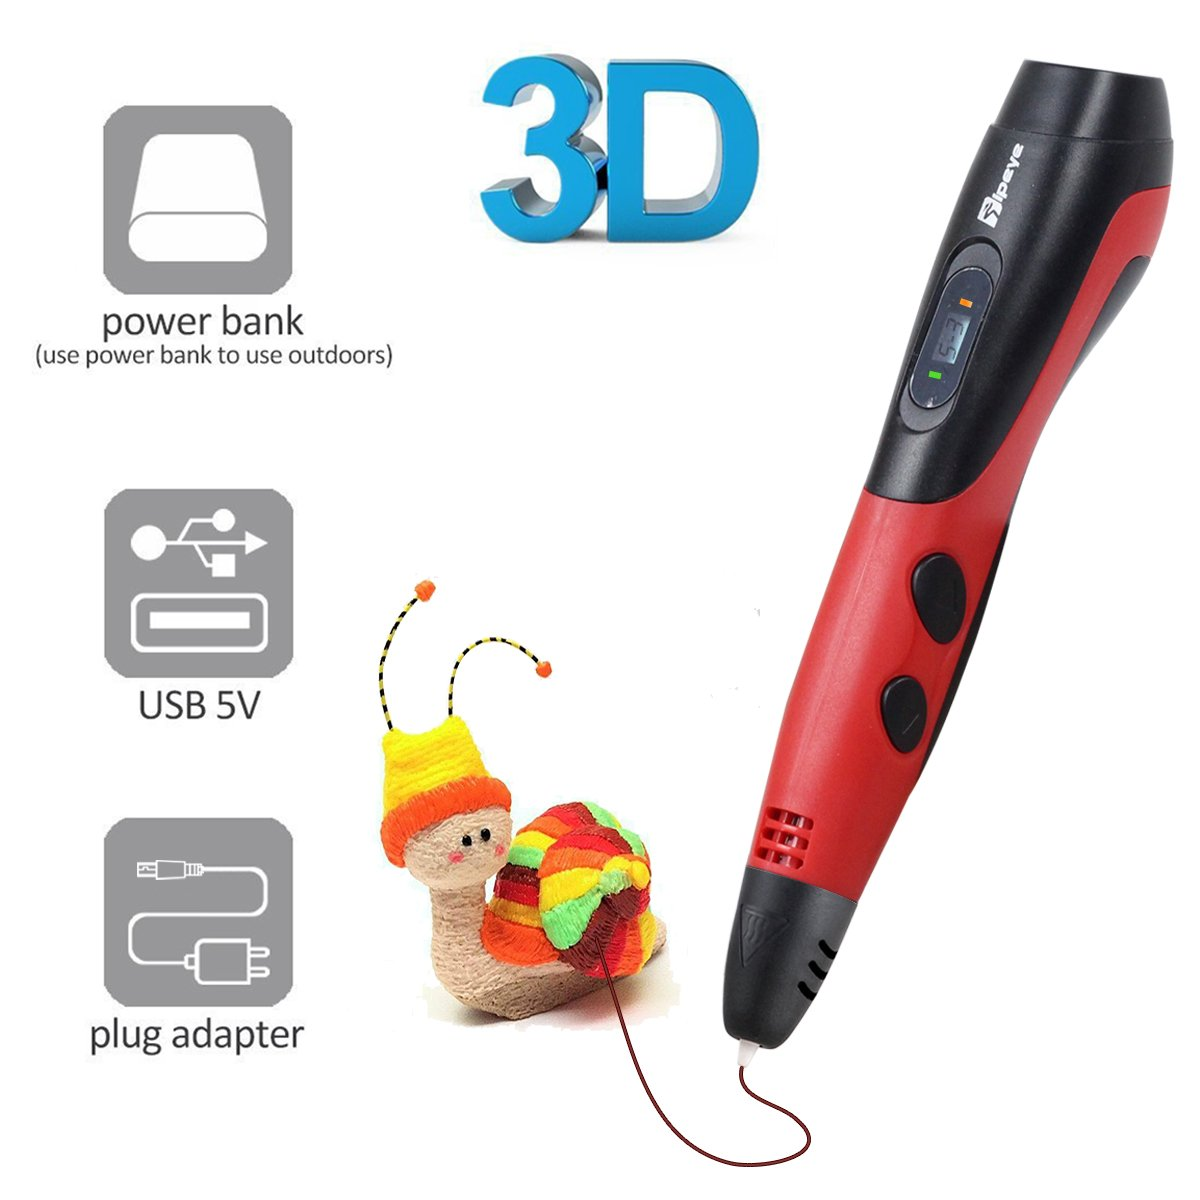 TIPEYE 3D Pen for Kids with 200 Stencils EBook 2019 Newest Version 3D Pen Kits with 7.5m PLA Filament 3D Printing Pen with LCD Display PLA Filament Refills for Adults Girls Artist Drawing Doodling